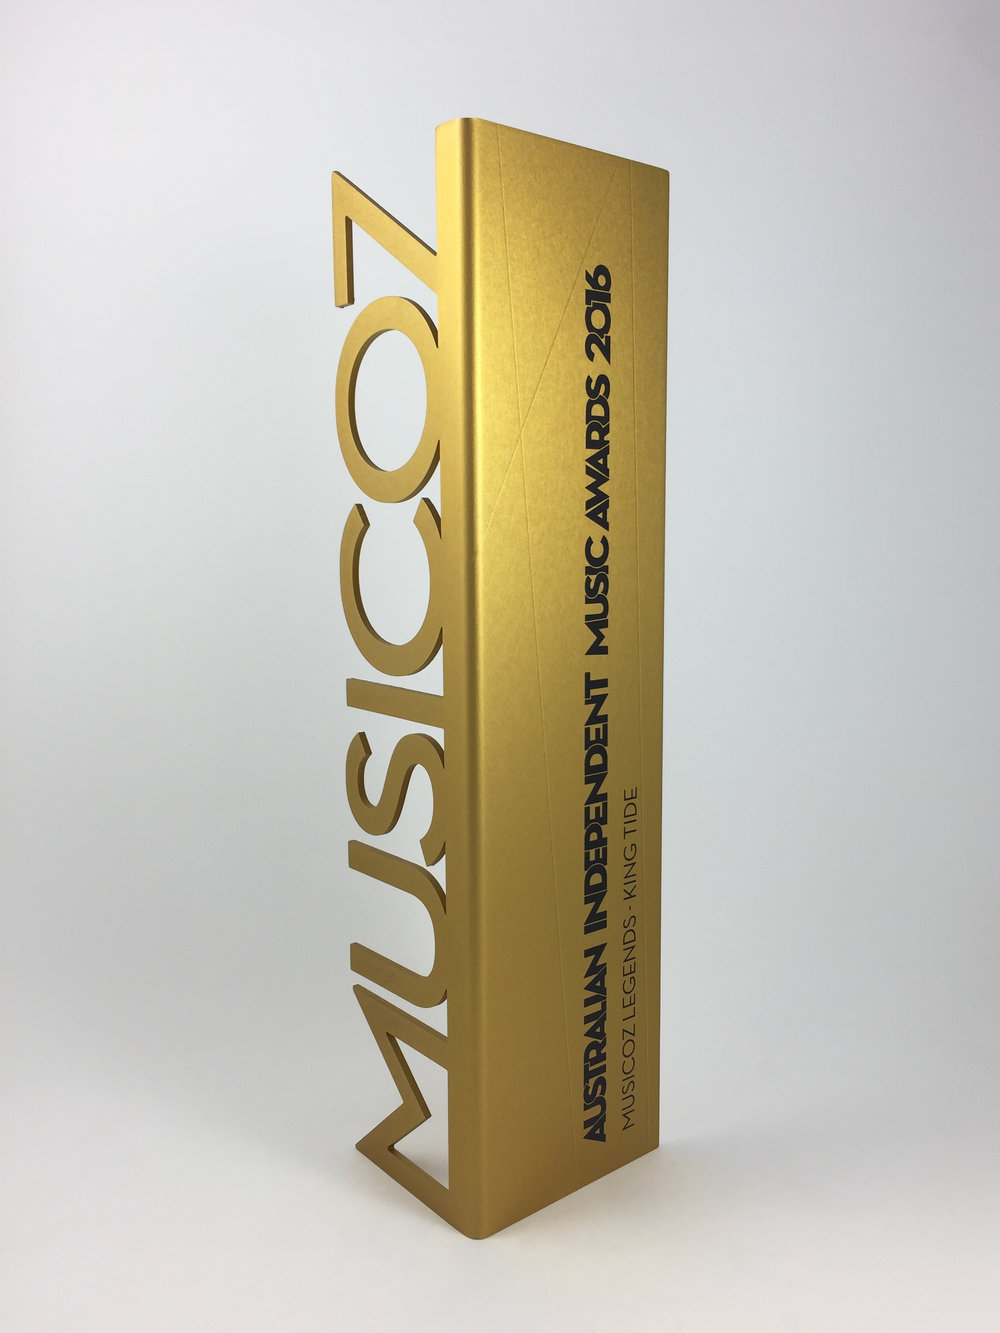 music-oz-aluminium-awards-trophy-02.jpg